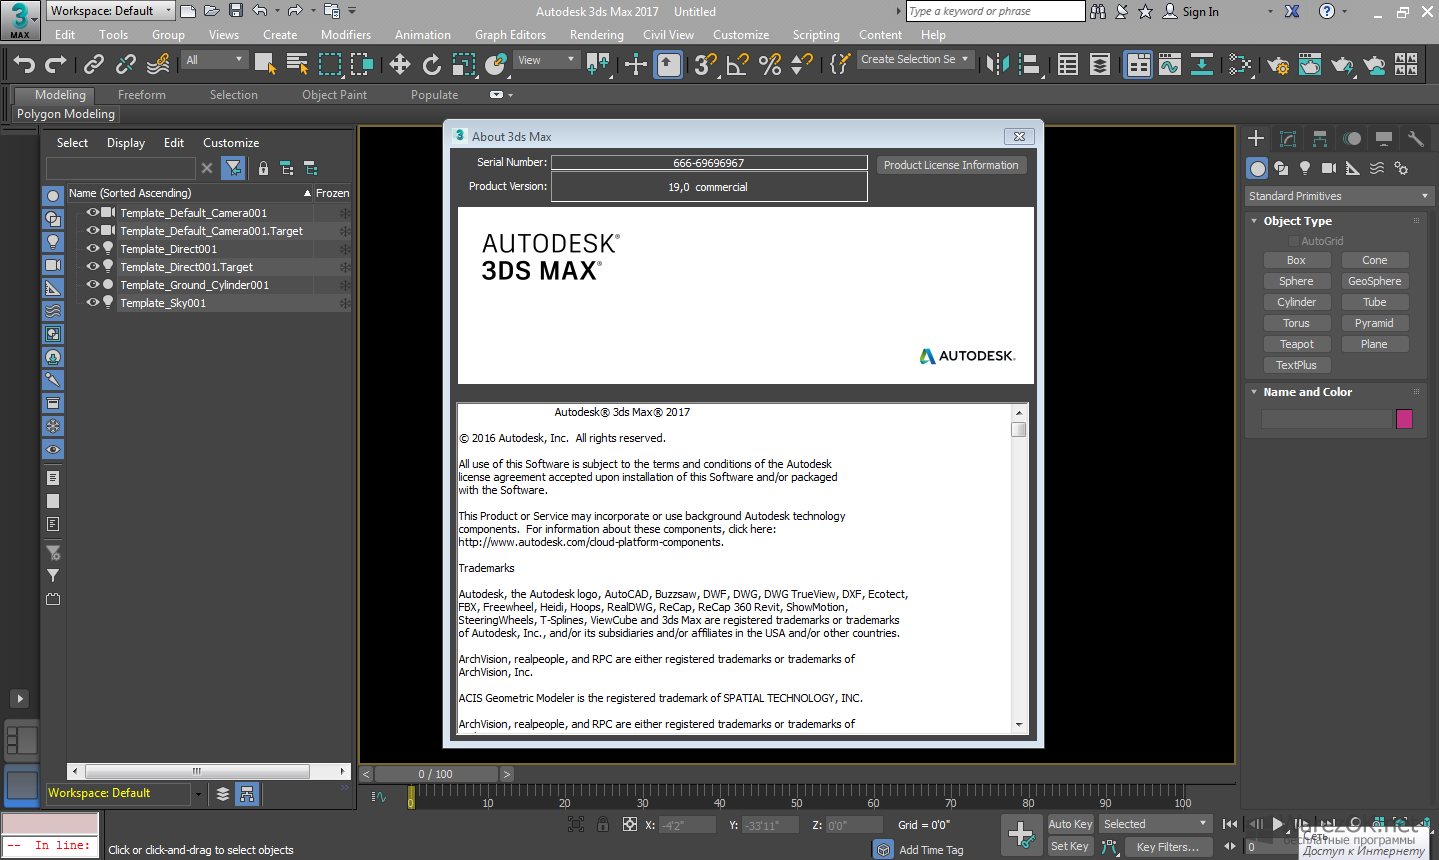 autodesk 3ds max torrent